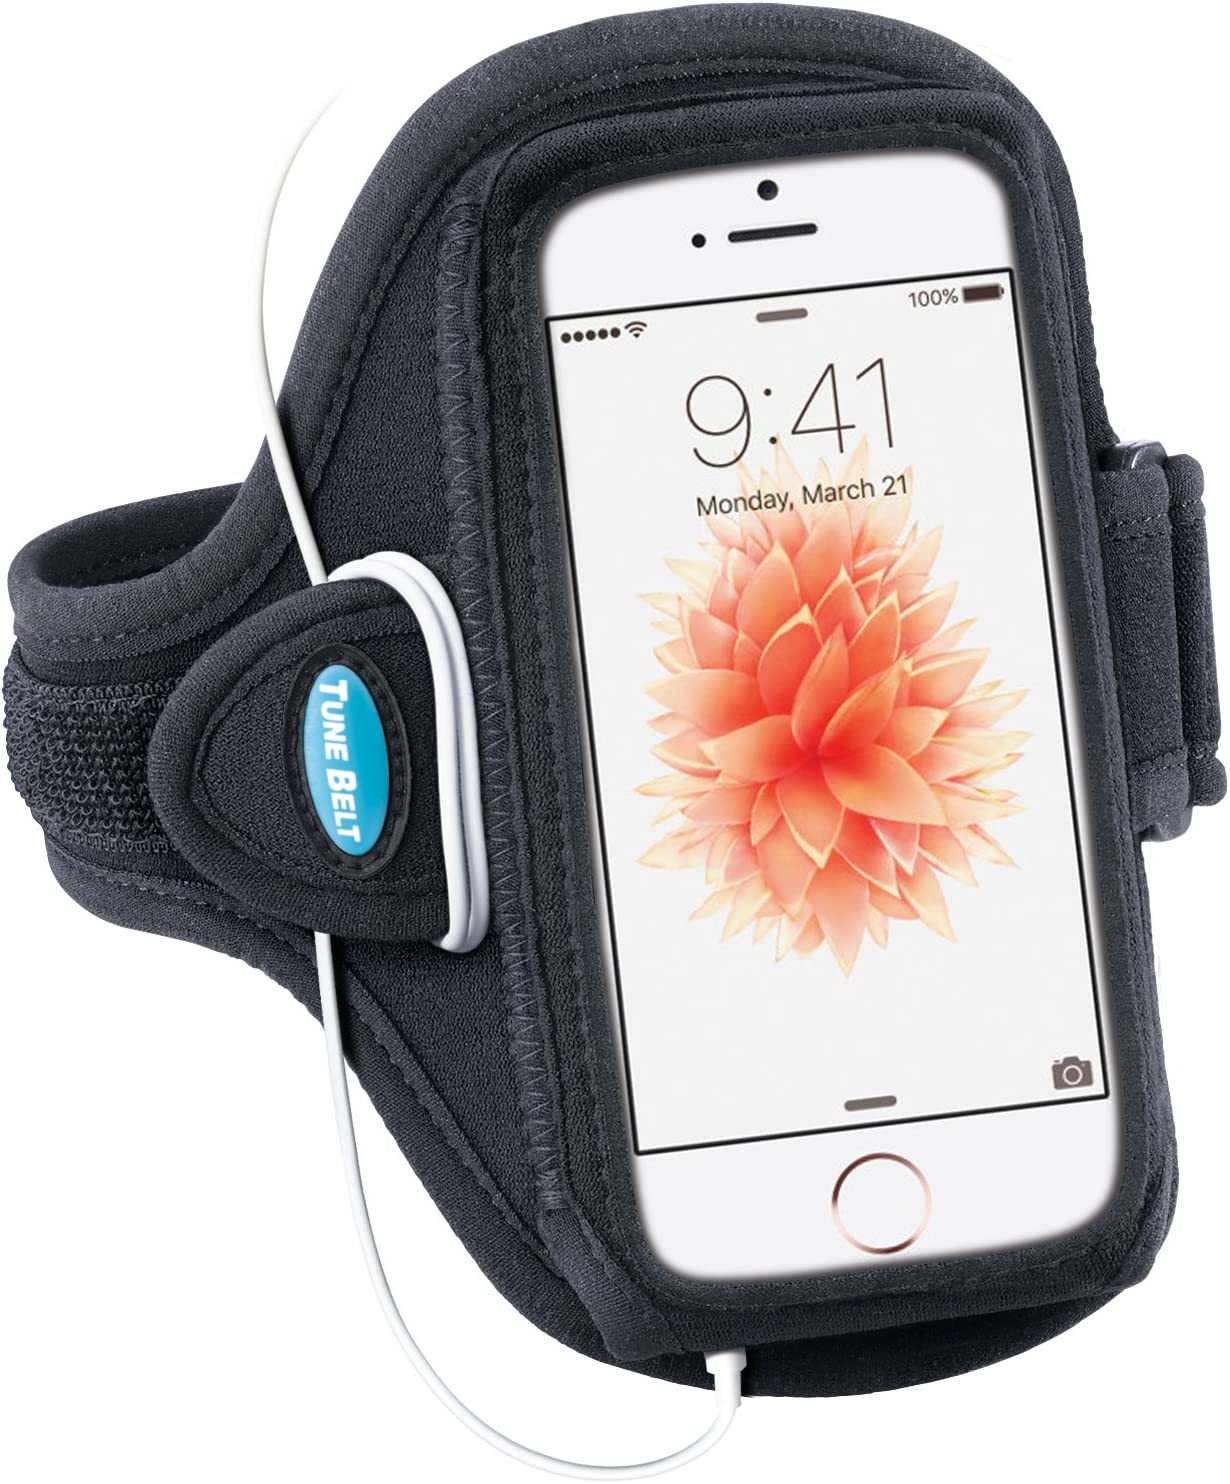 Tune Belt Armband for iPhone SE (2016) 5 5s 5c & iPod touch 5th 6th Generation - For Running & Working Out - Sweat-Resistant AB87 [Black]